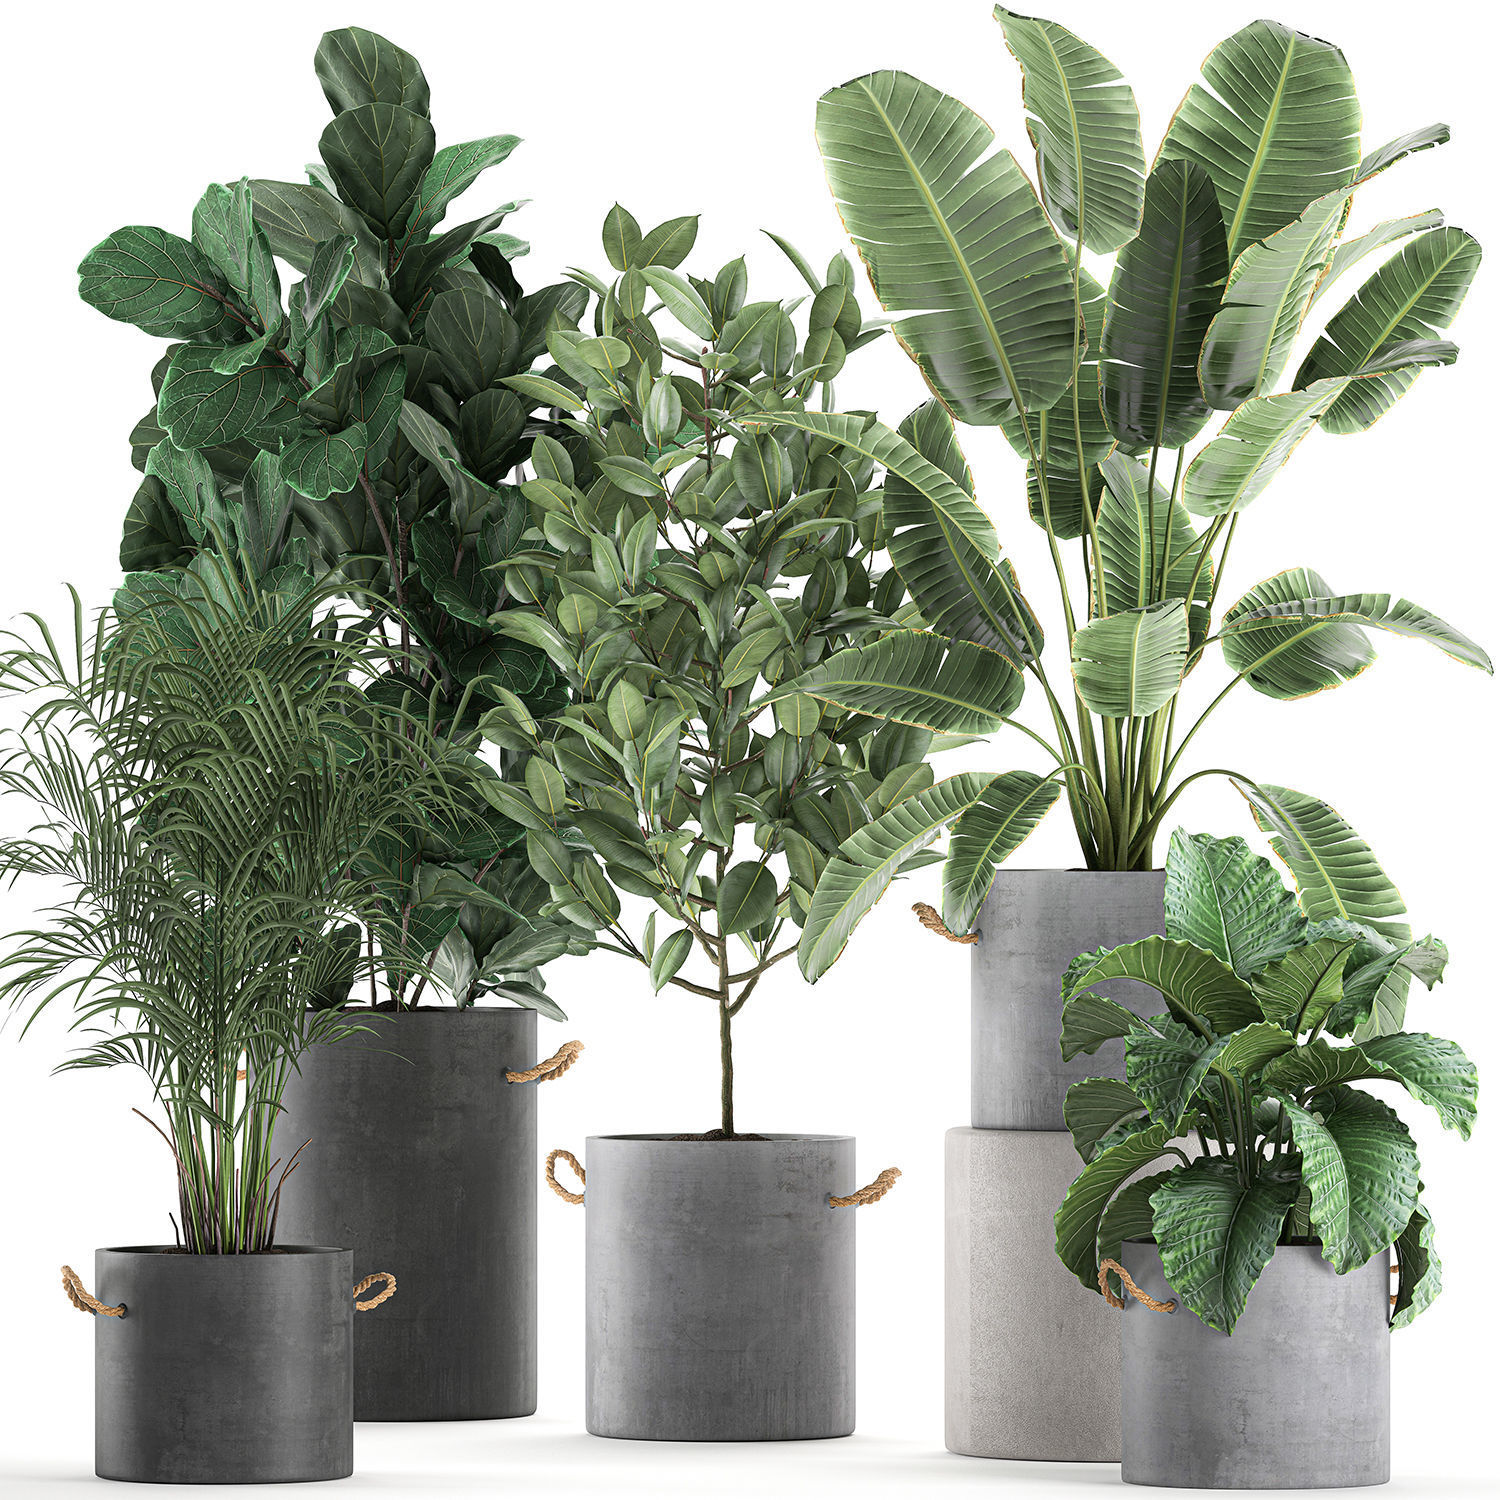 Decorative plants for the interior in flowerpots 613